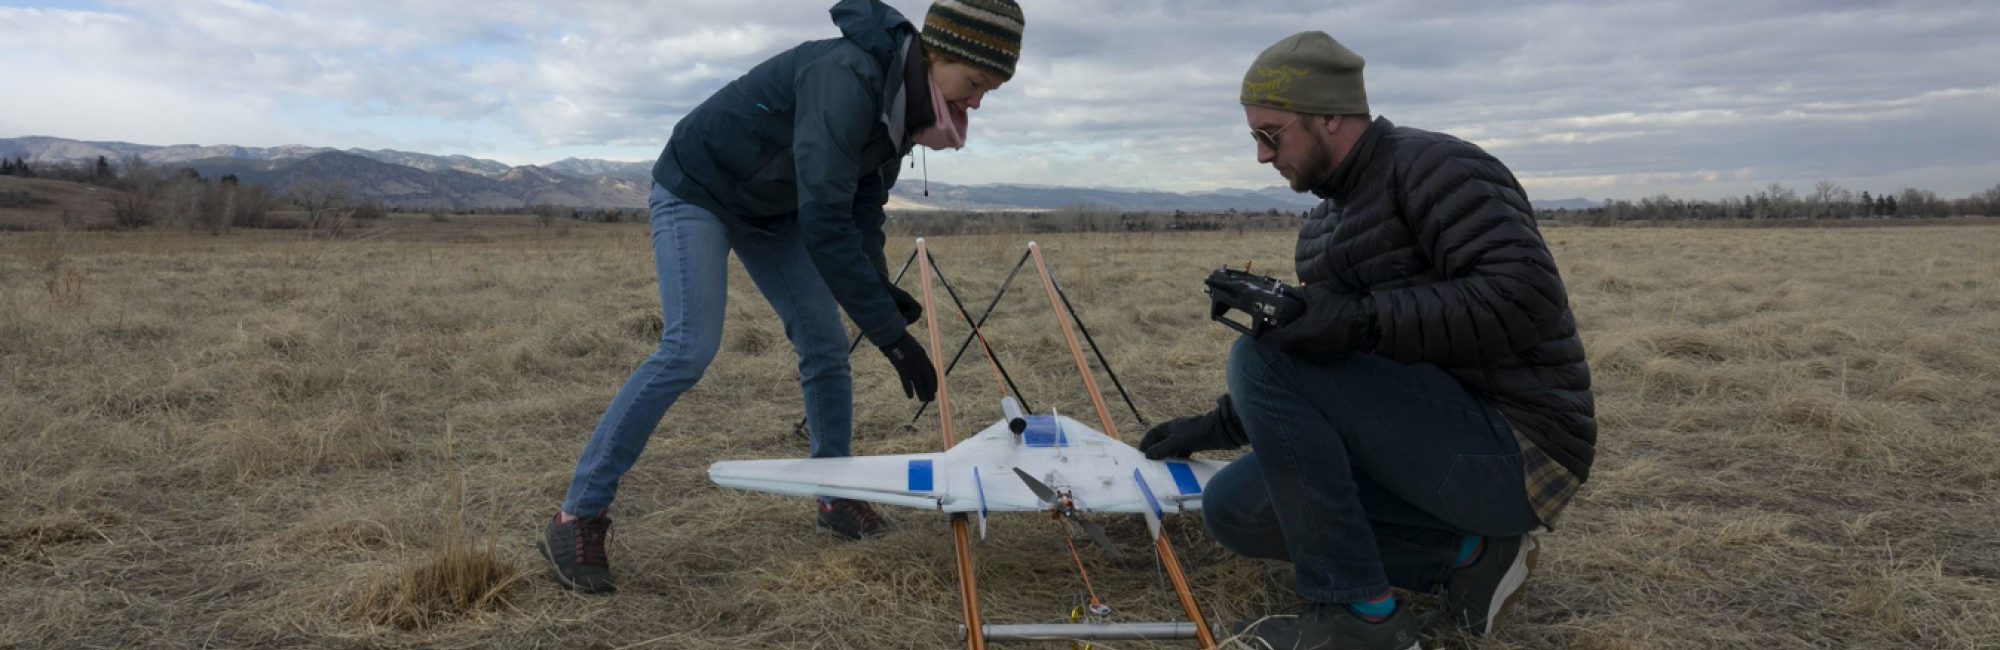 CIRES postdoctoral researcher Radiance Calmer (left) and Colorado University (CU) Boulder engineering graduate student Jonathan Hamilton place an unmanned aerial system on its launcher in preparation for its first test flight in Boulder, Colorado. It's the same kind they are using on the MOSAiC expedition to gather atmospheric data on temperature, pressure and humidity. Photo by Julia Medeiros.